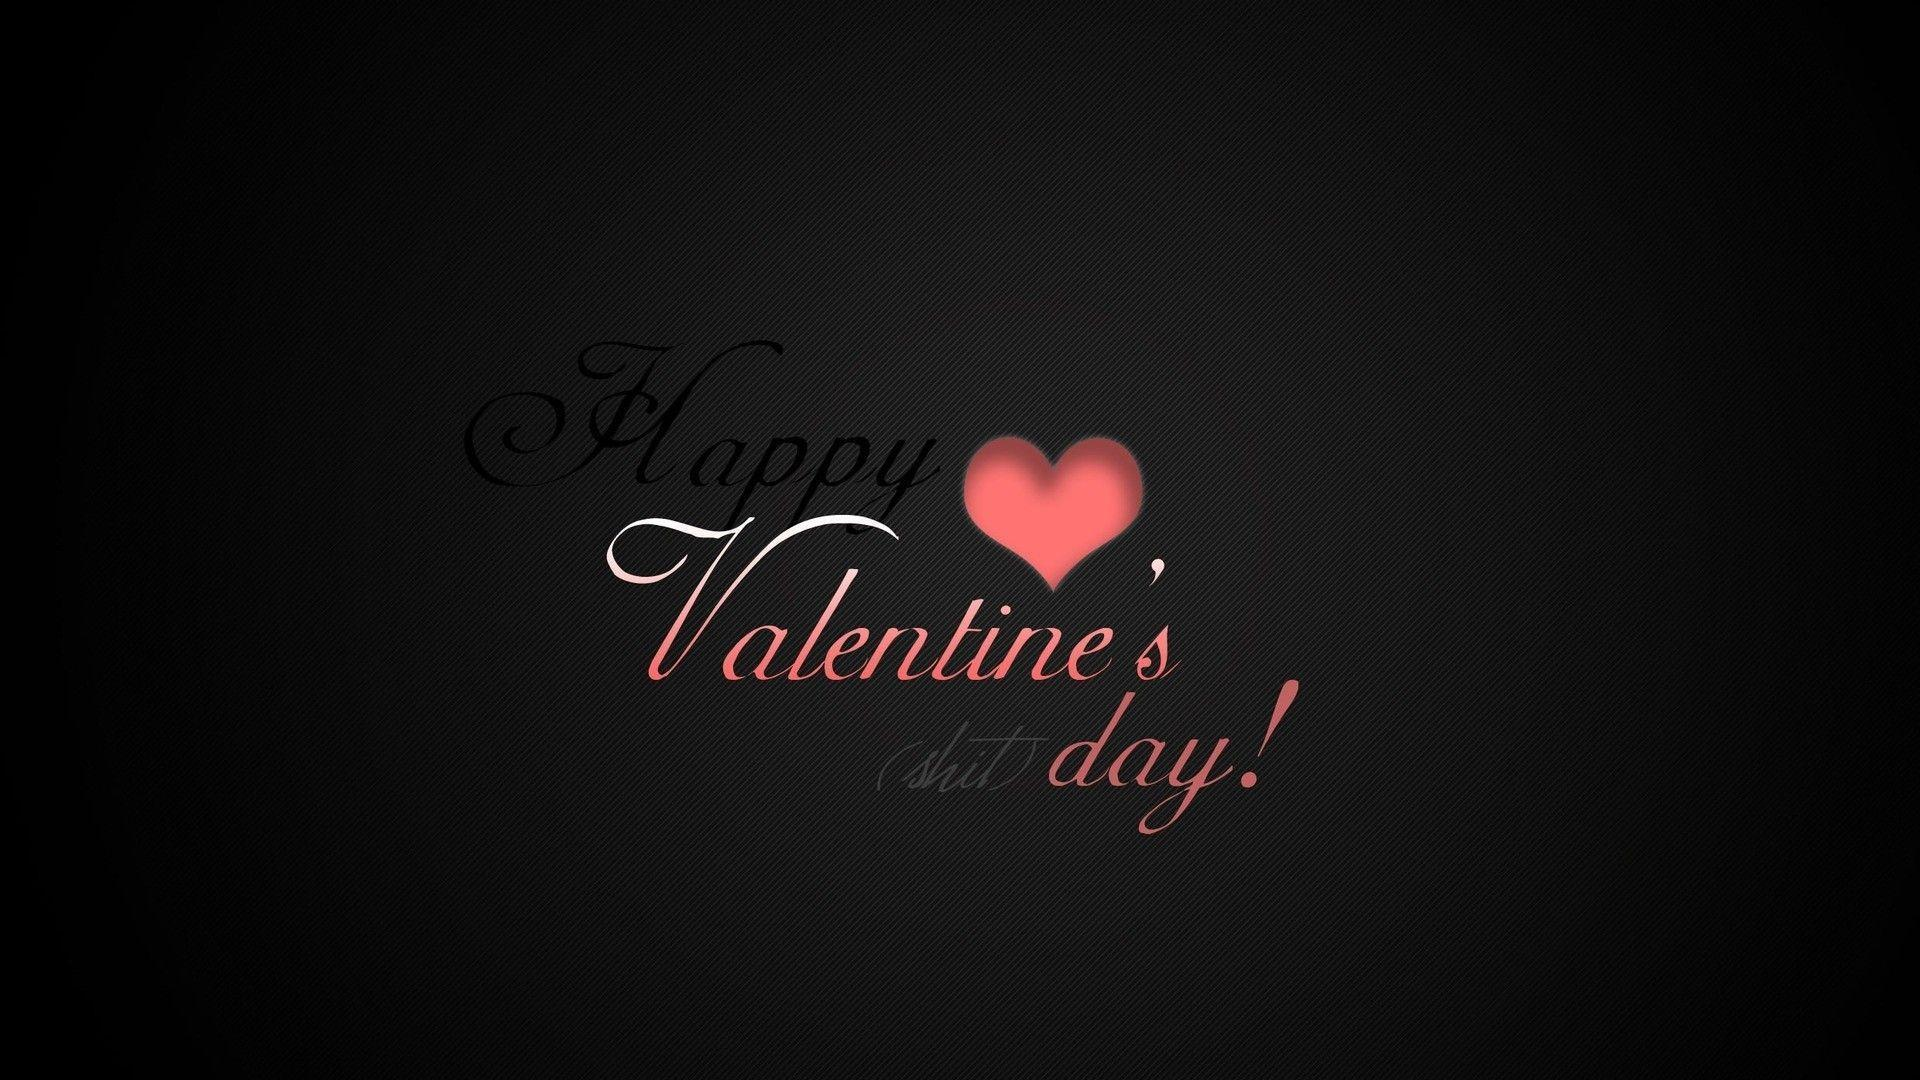 Funny Valentines Day Wallpapers 1920x1080